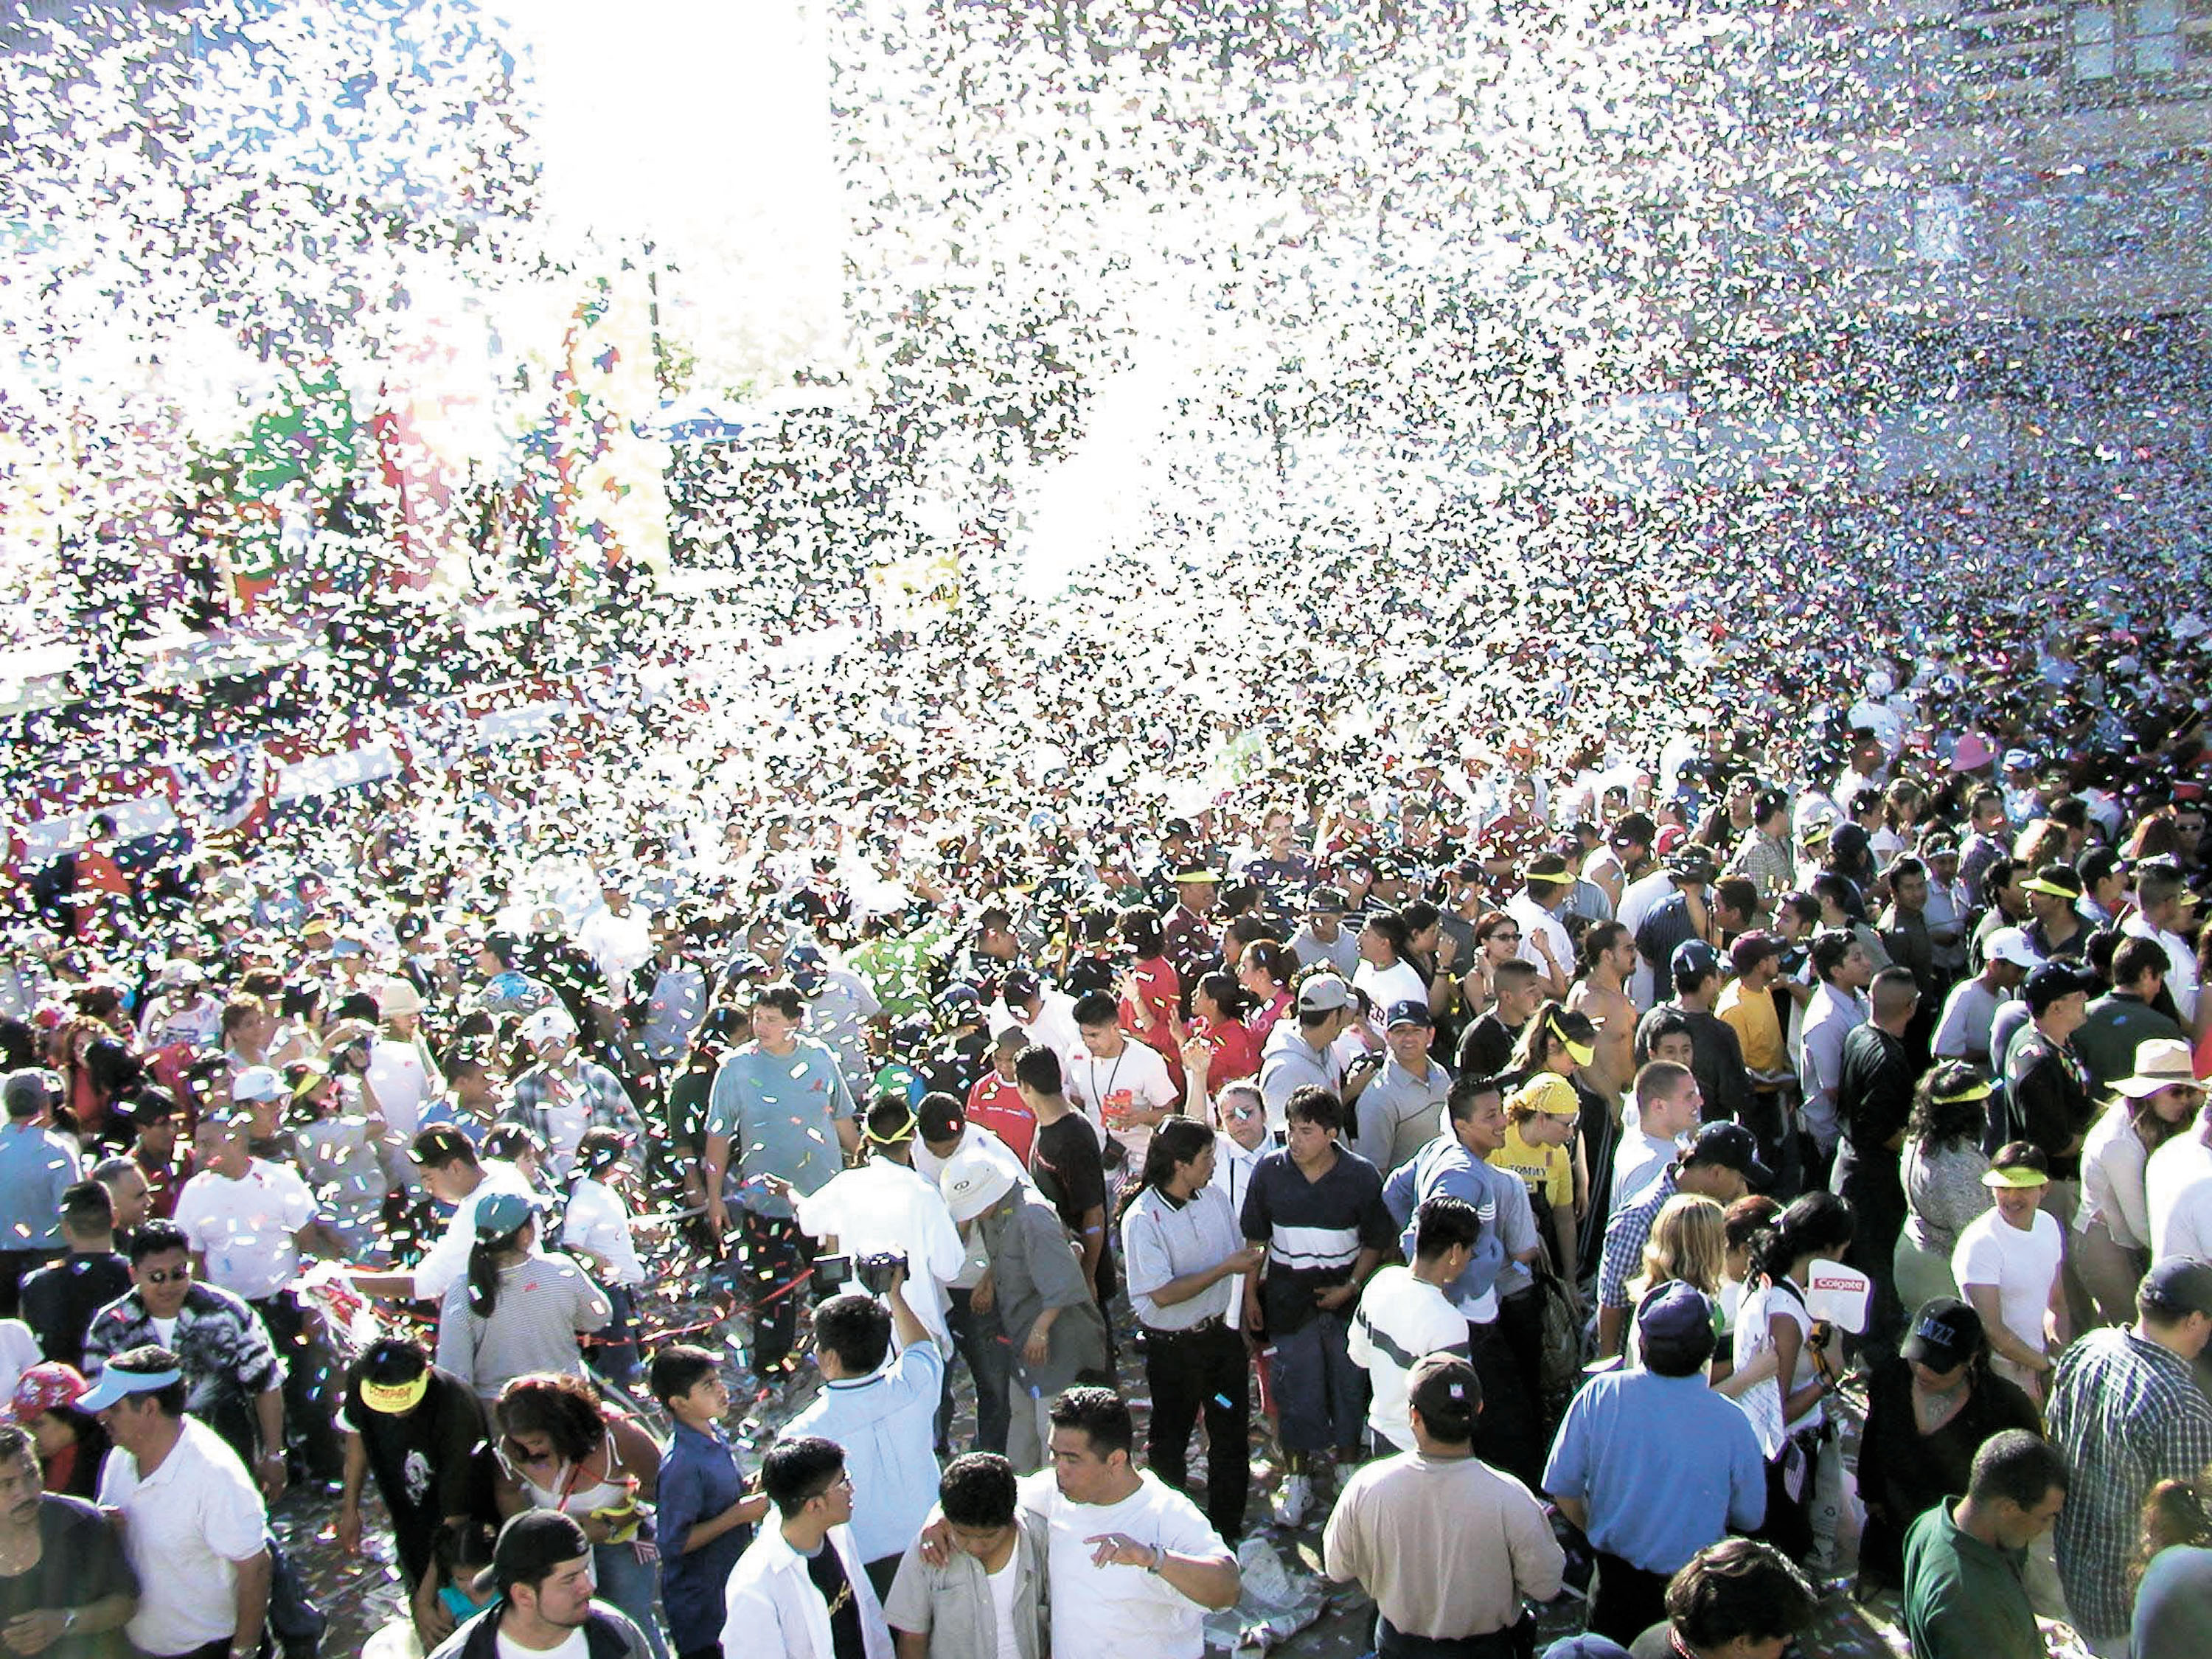 404619 07: Confetti is released on the crowd at the end of a concert during the 13th Annual McDonald's Fiesta Broadway, an early Cinco De Mayo celebration April 28, 2002 in downtown Los Angeles, CA. (Photo by Alexander Sibaja/Getty Images)